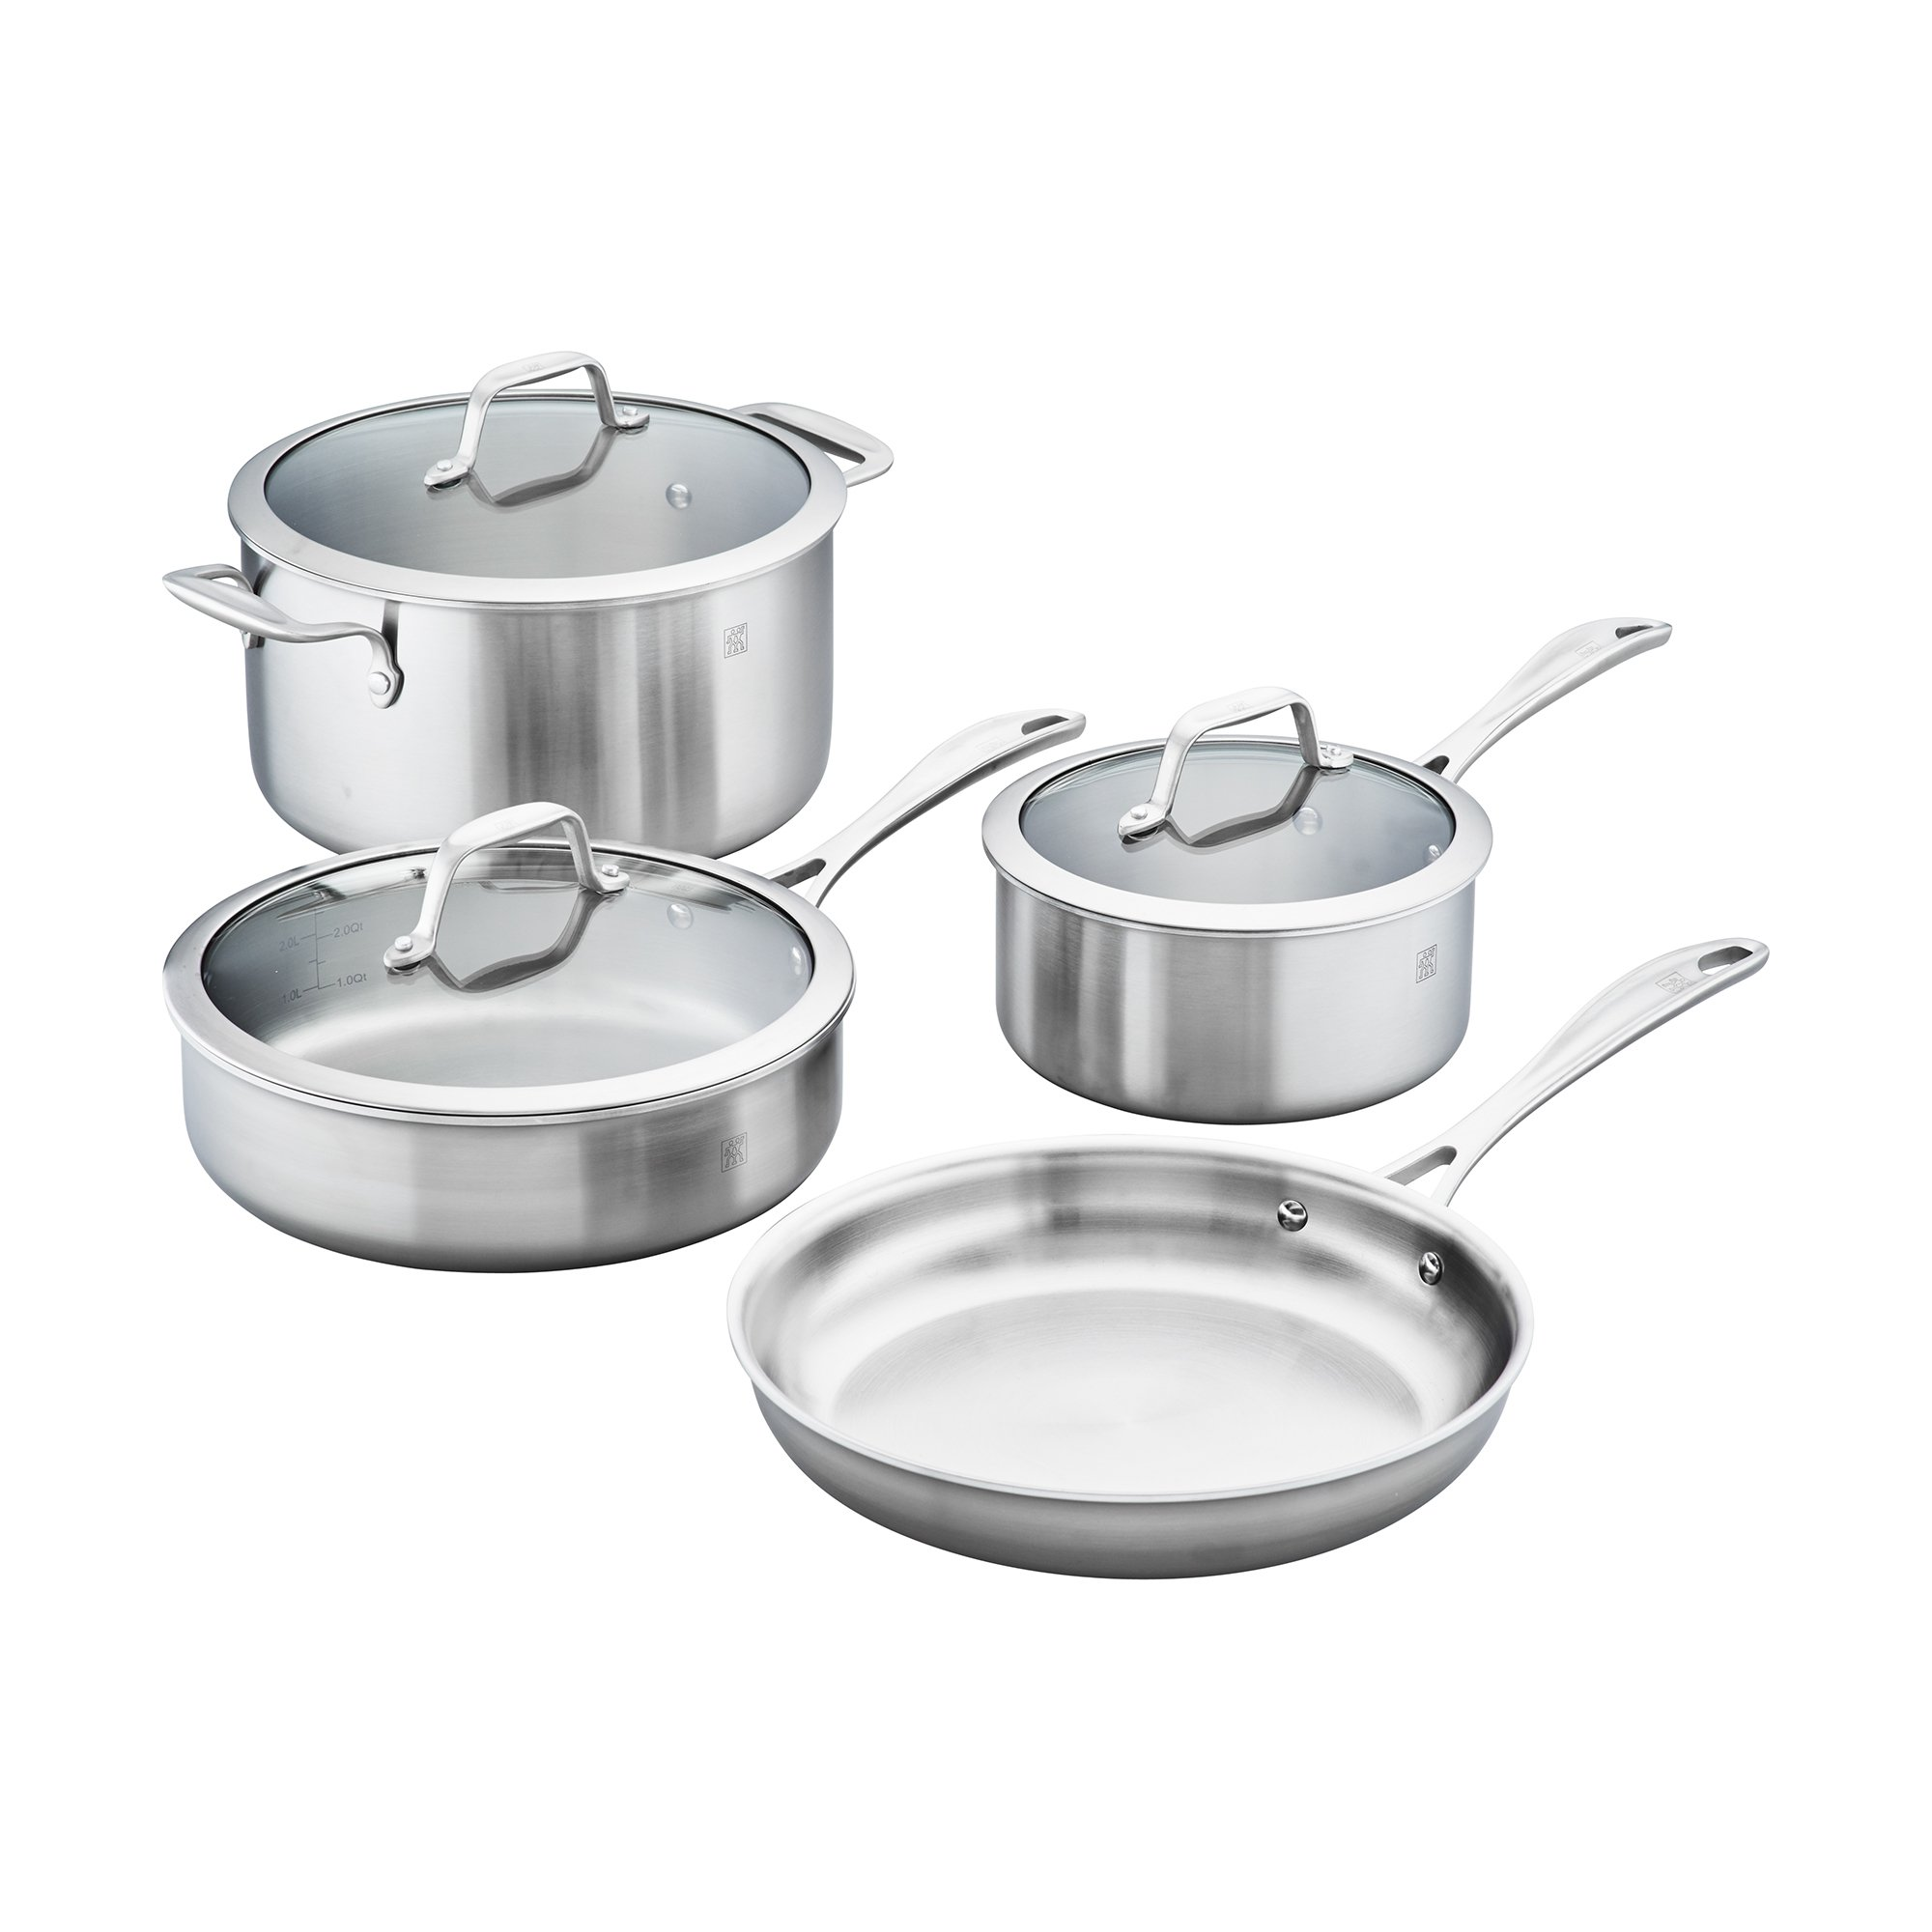 ZWILLING Spirit 3-ply 7-pc Stainless Steel Cookware Set